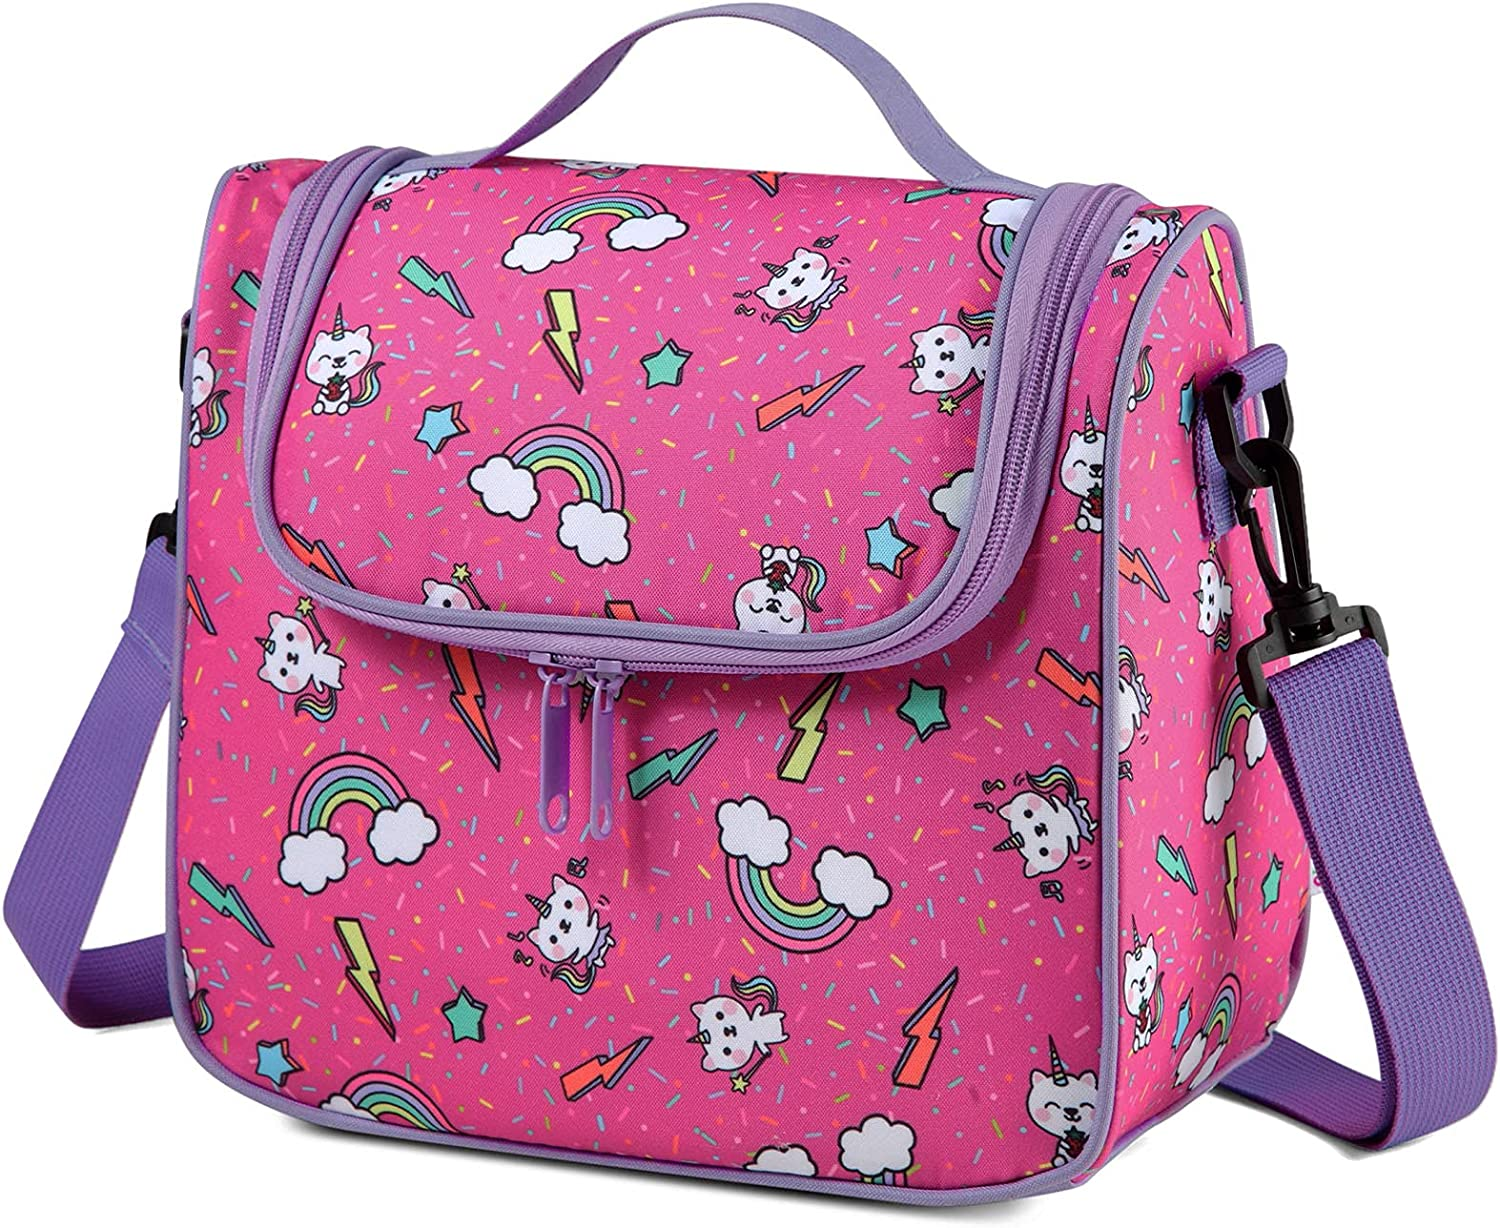 Lunch Bag for Girls, Chasechic Insulated Kids Lunch Bag, Lightweight Lunch Box Leak-Proof Cooler Bag with Detachable Adjustable Shoulder Strap, Kids Lunch Tote Organizer for Daycare School, Cat